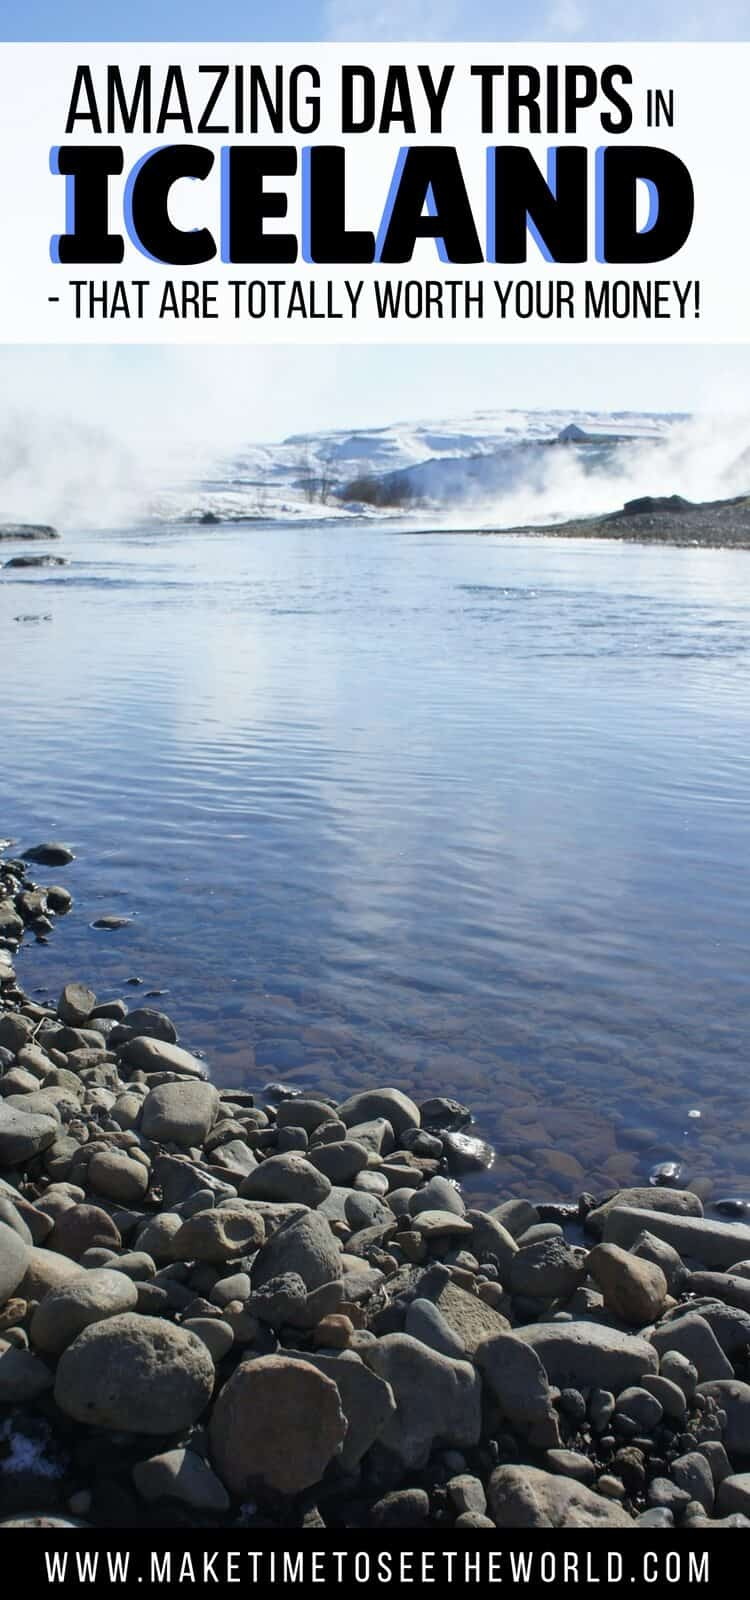 Incredible Day Trips in Iceland